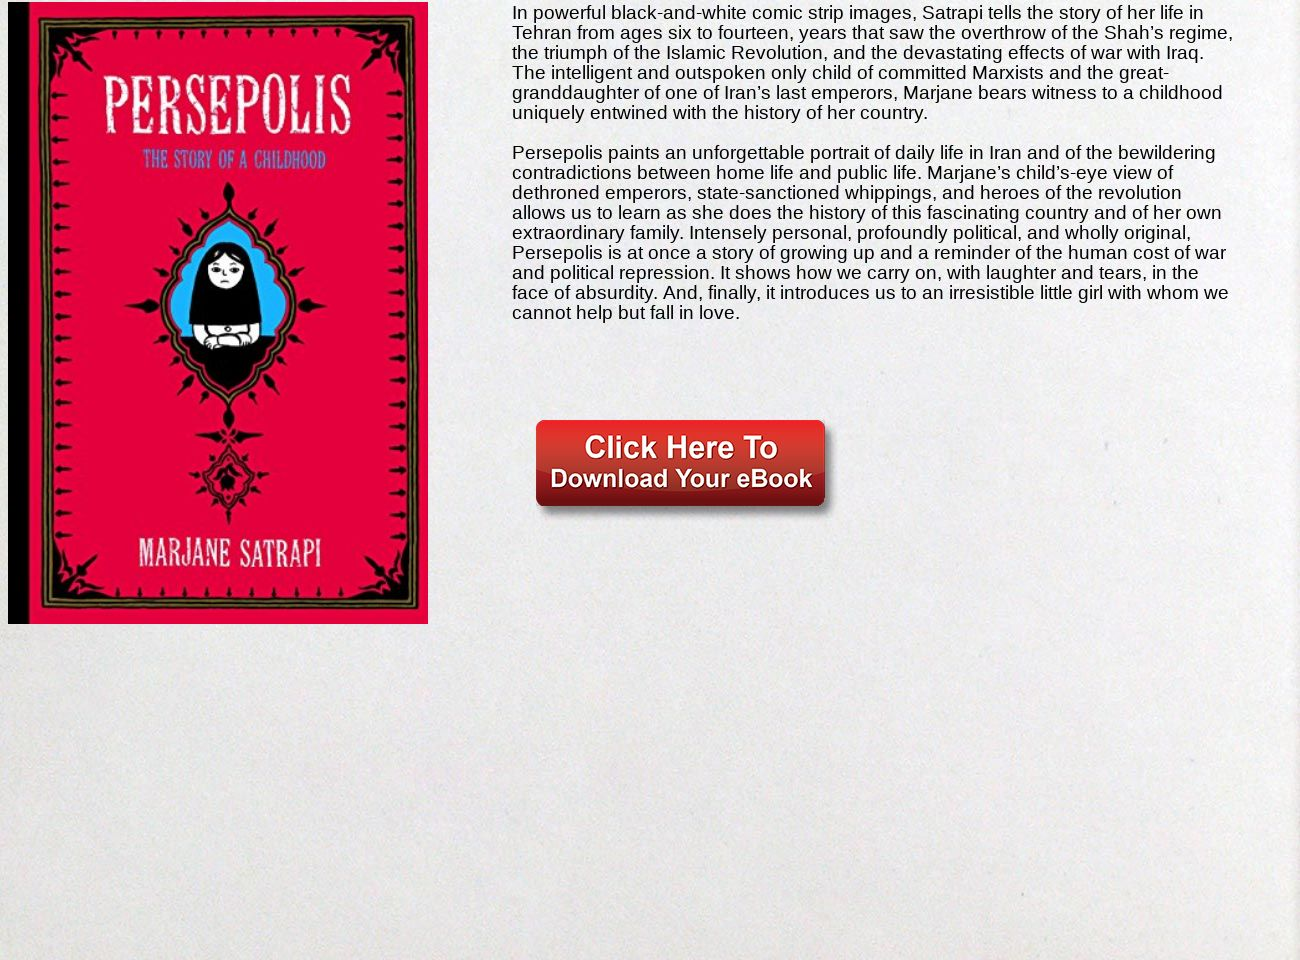 Download Ebook Persepolis The Story Of A Childhood Pantheon Graphic Library Pdf Text Images Music Video Glogster Edu Interactive Multimedia Posters